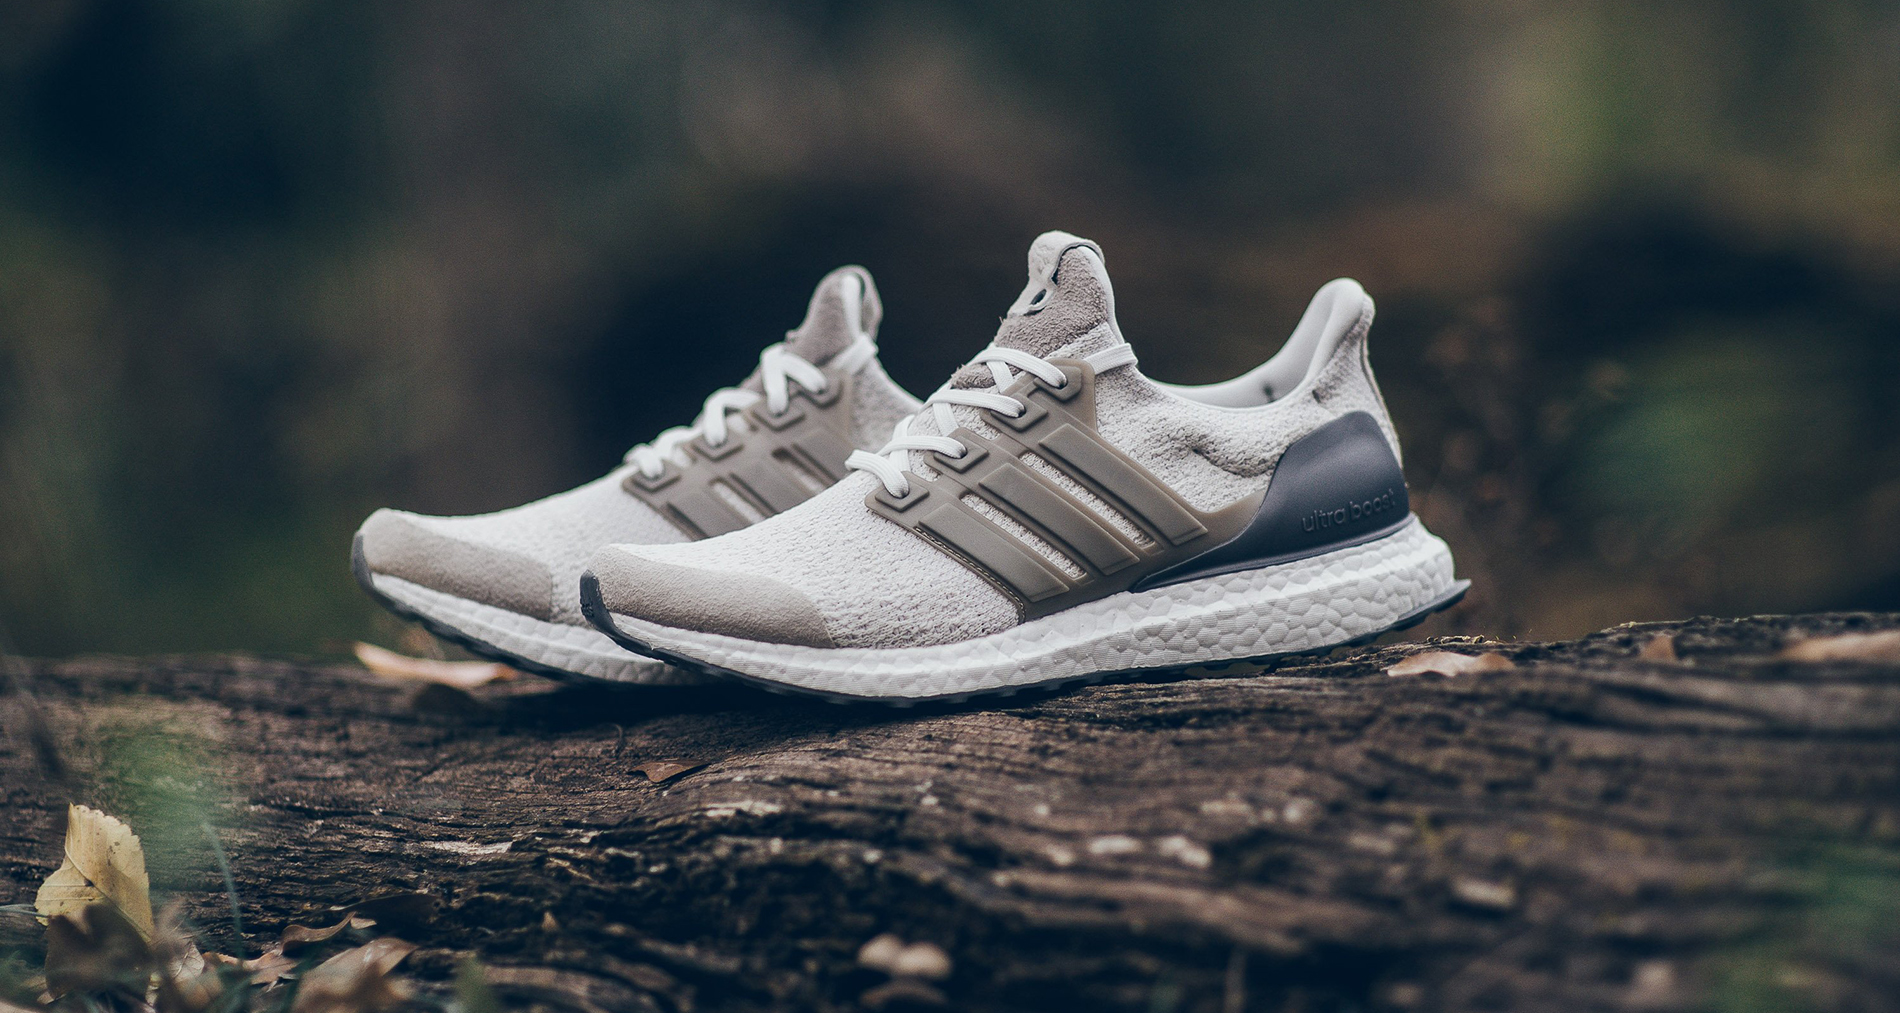 a7aa19e42333e Sneakersnstuff x Social Status x adidas Ultra Boost Lux    Another Look